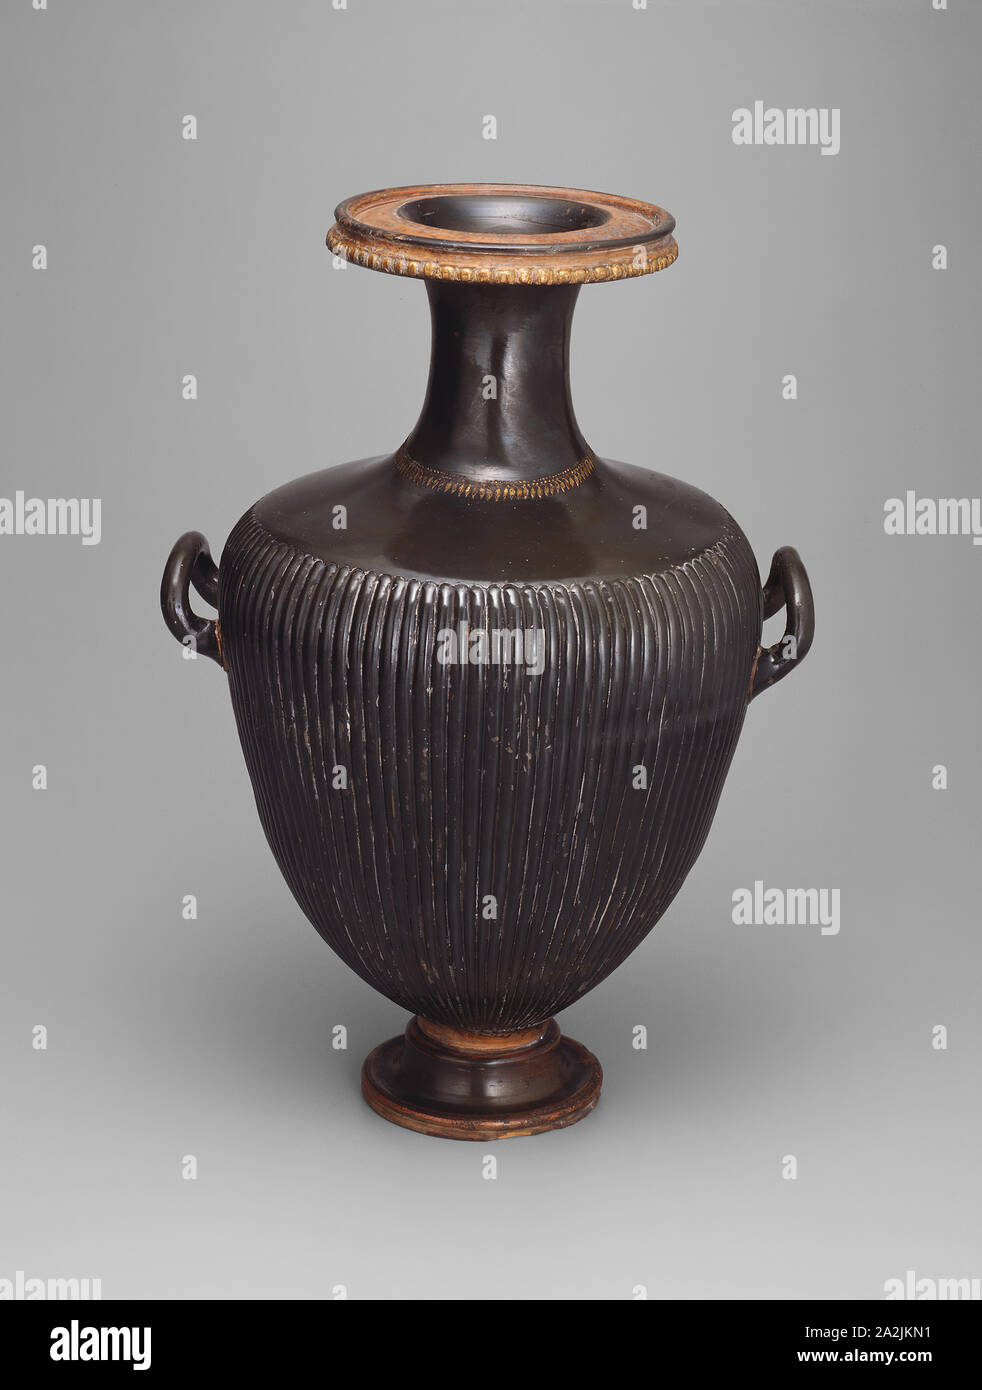 Hydria Water Jar 350 330 Bc Greek Campania Italy Puglia Terracotta Black Glaze Technique With Gilded Raised Clay Decoration And Ribbing 50 35 28 5 Cm 19 11 16 13 3 4 11 1 4 In Stock Photo Alamy